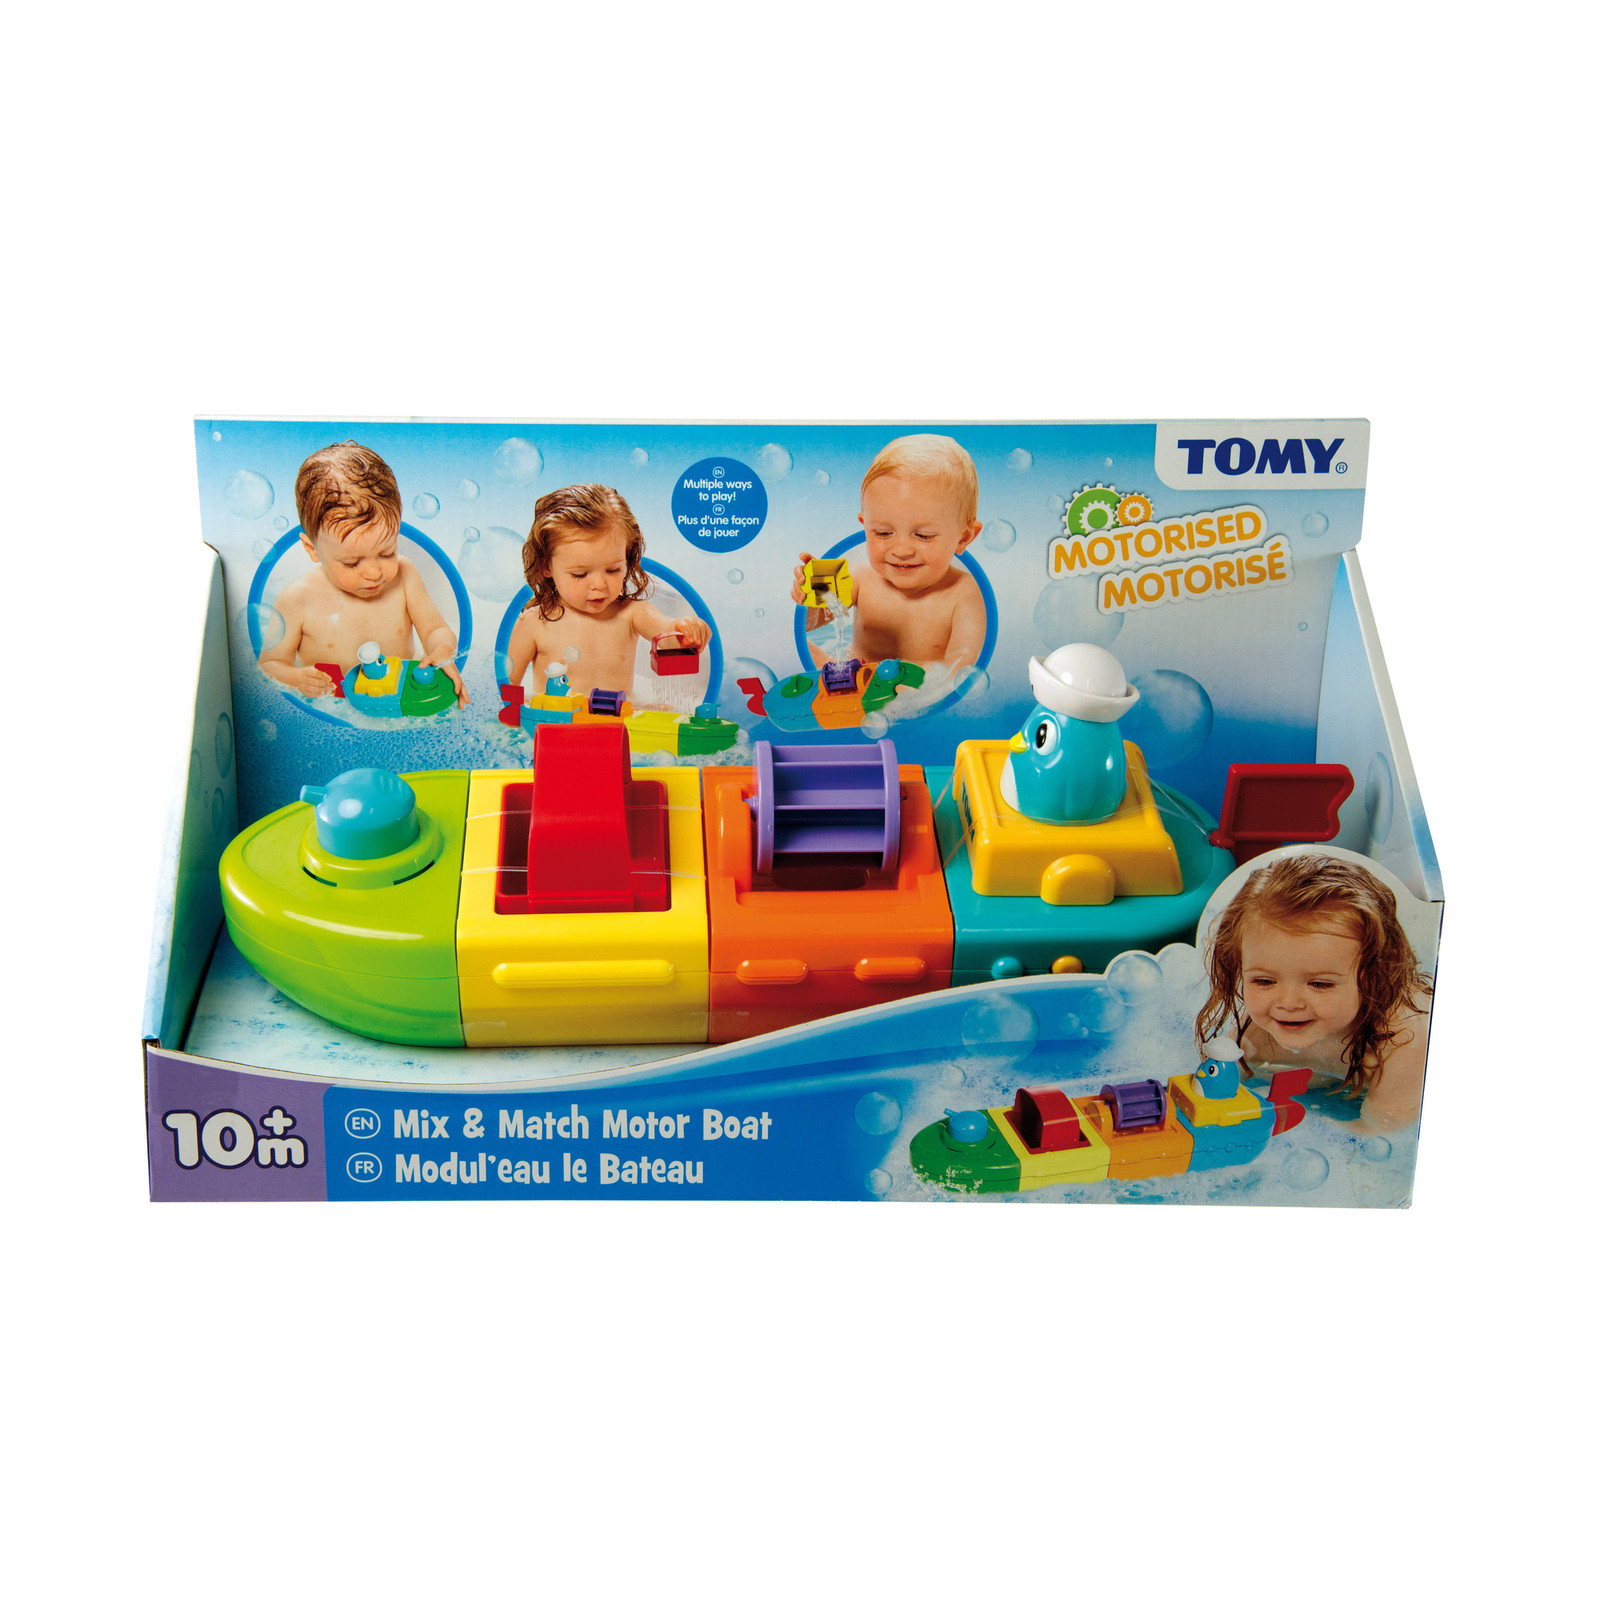 Tomy: Mix & Match Motor Boat Bath Toy image